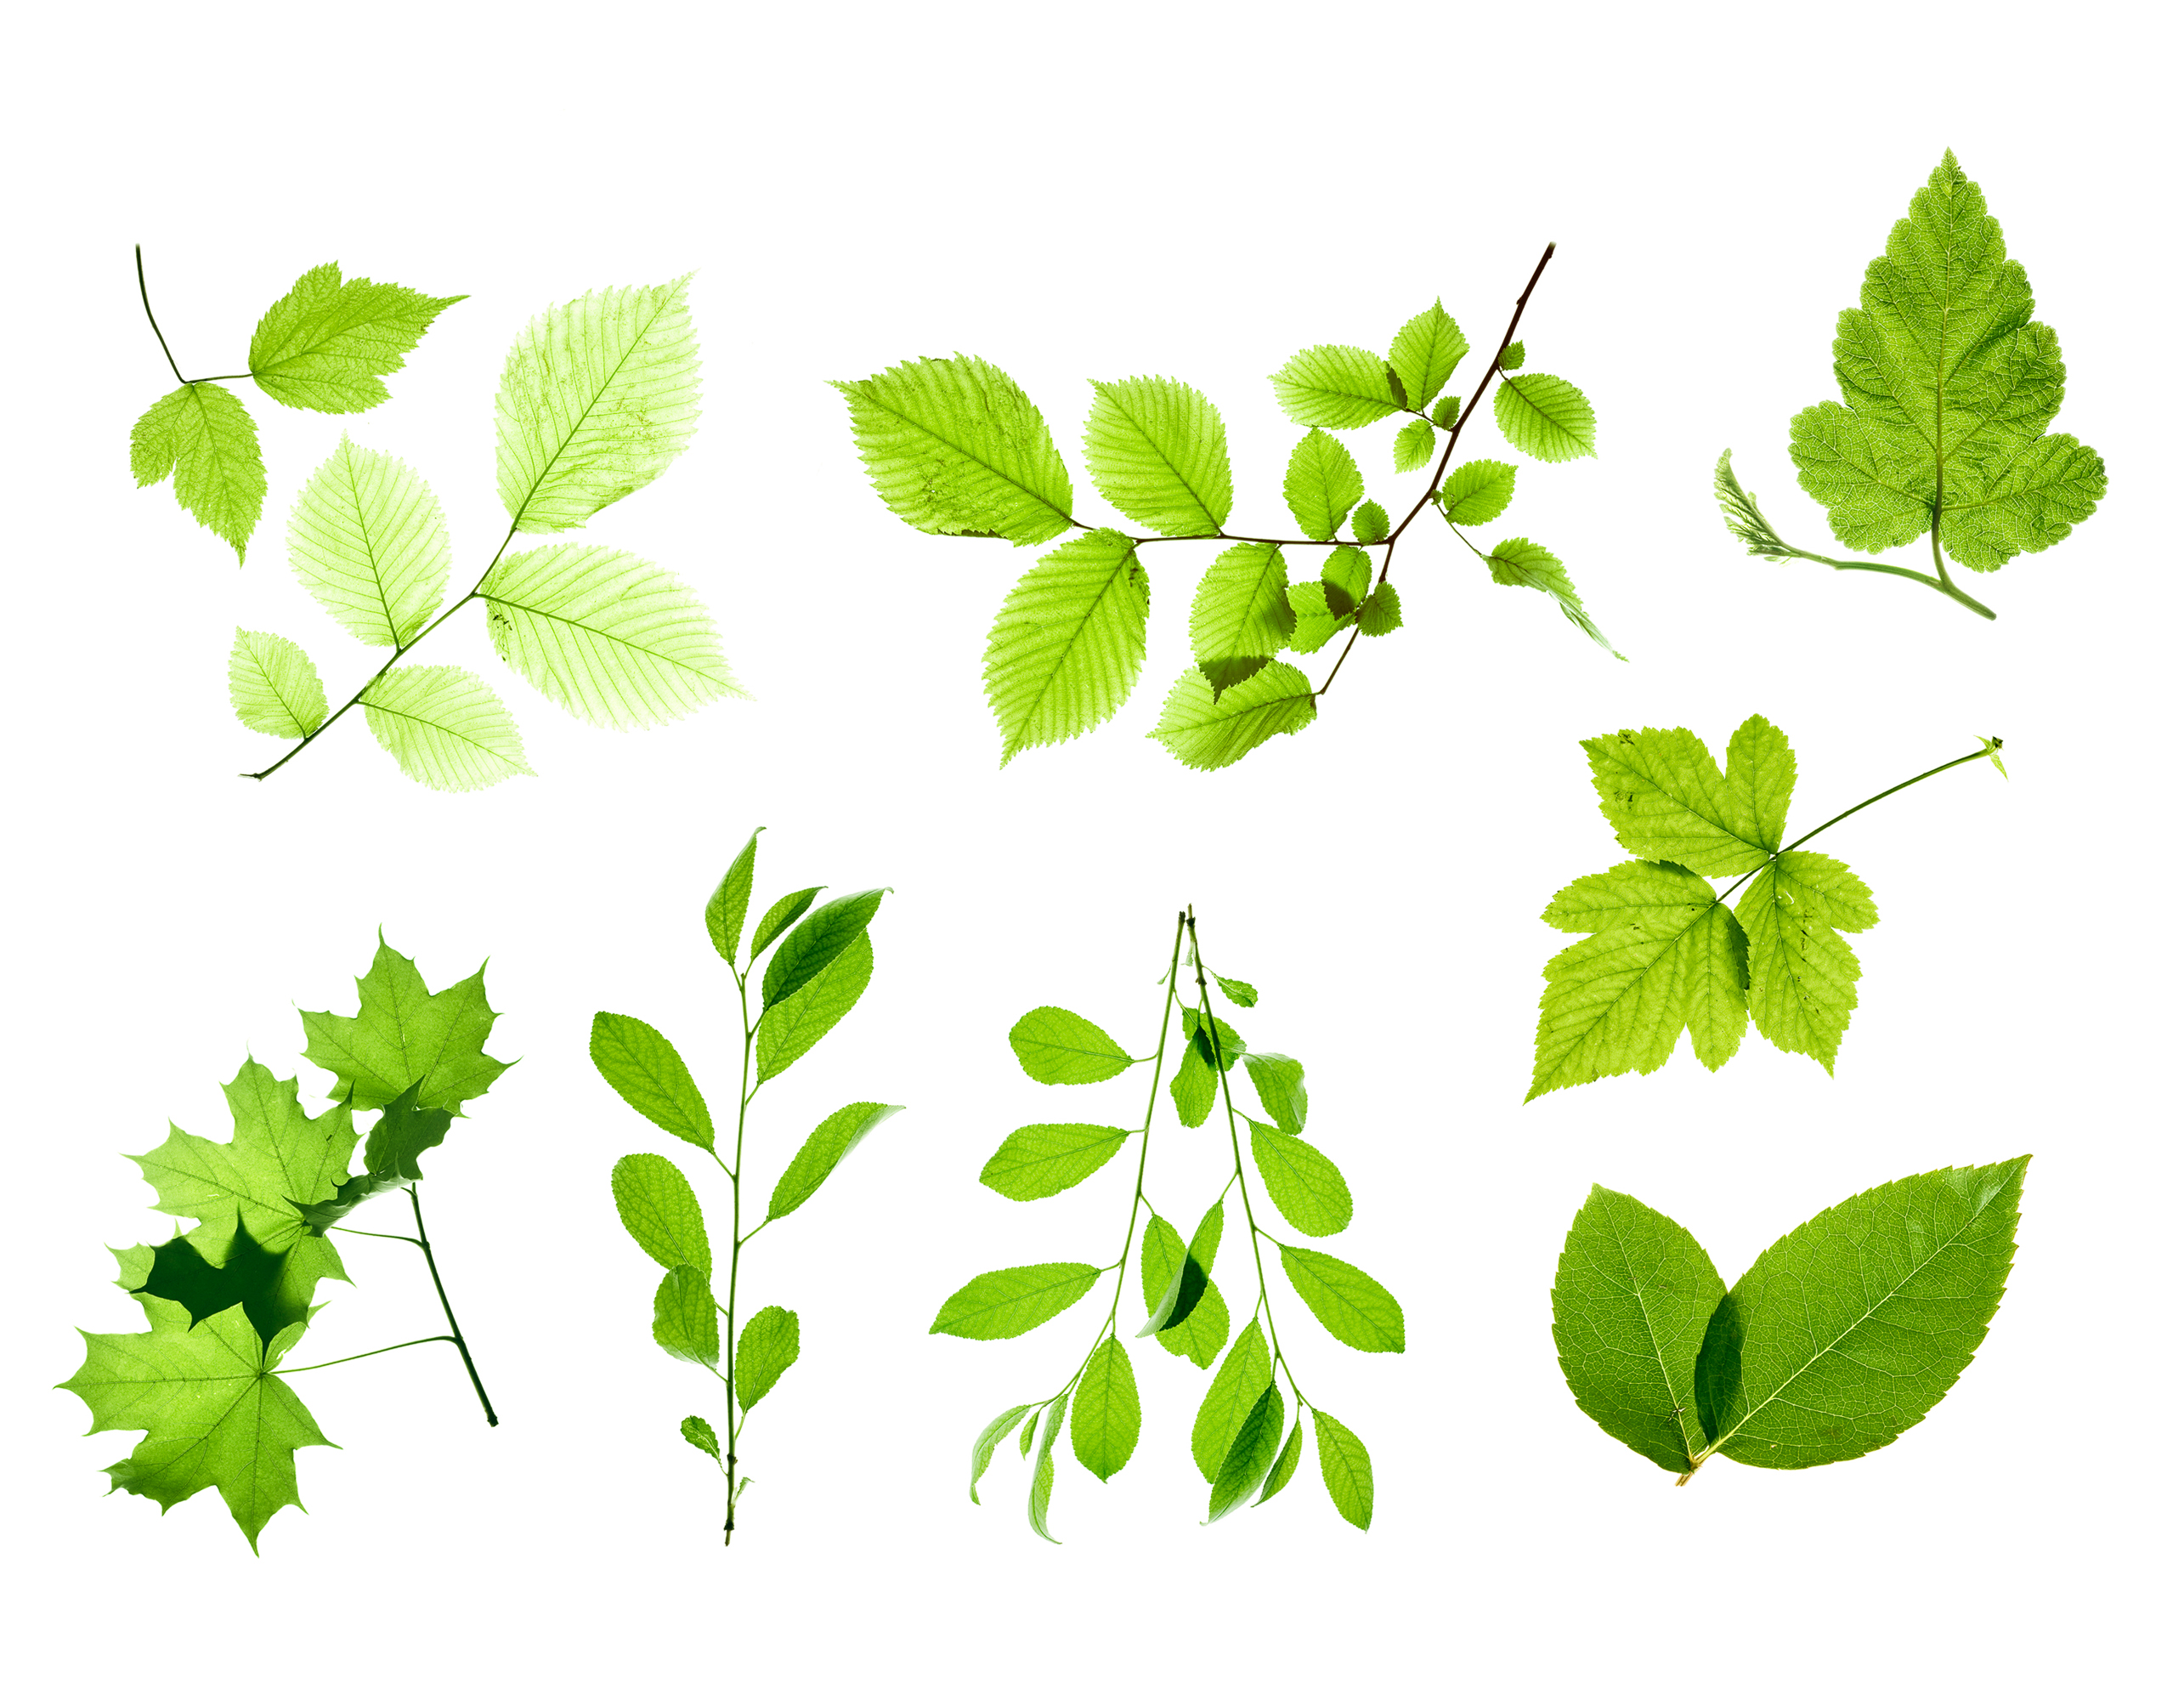 Set of Isolated Leaves, Plant, Ornate, Object, Nature, HQ Photo